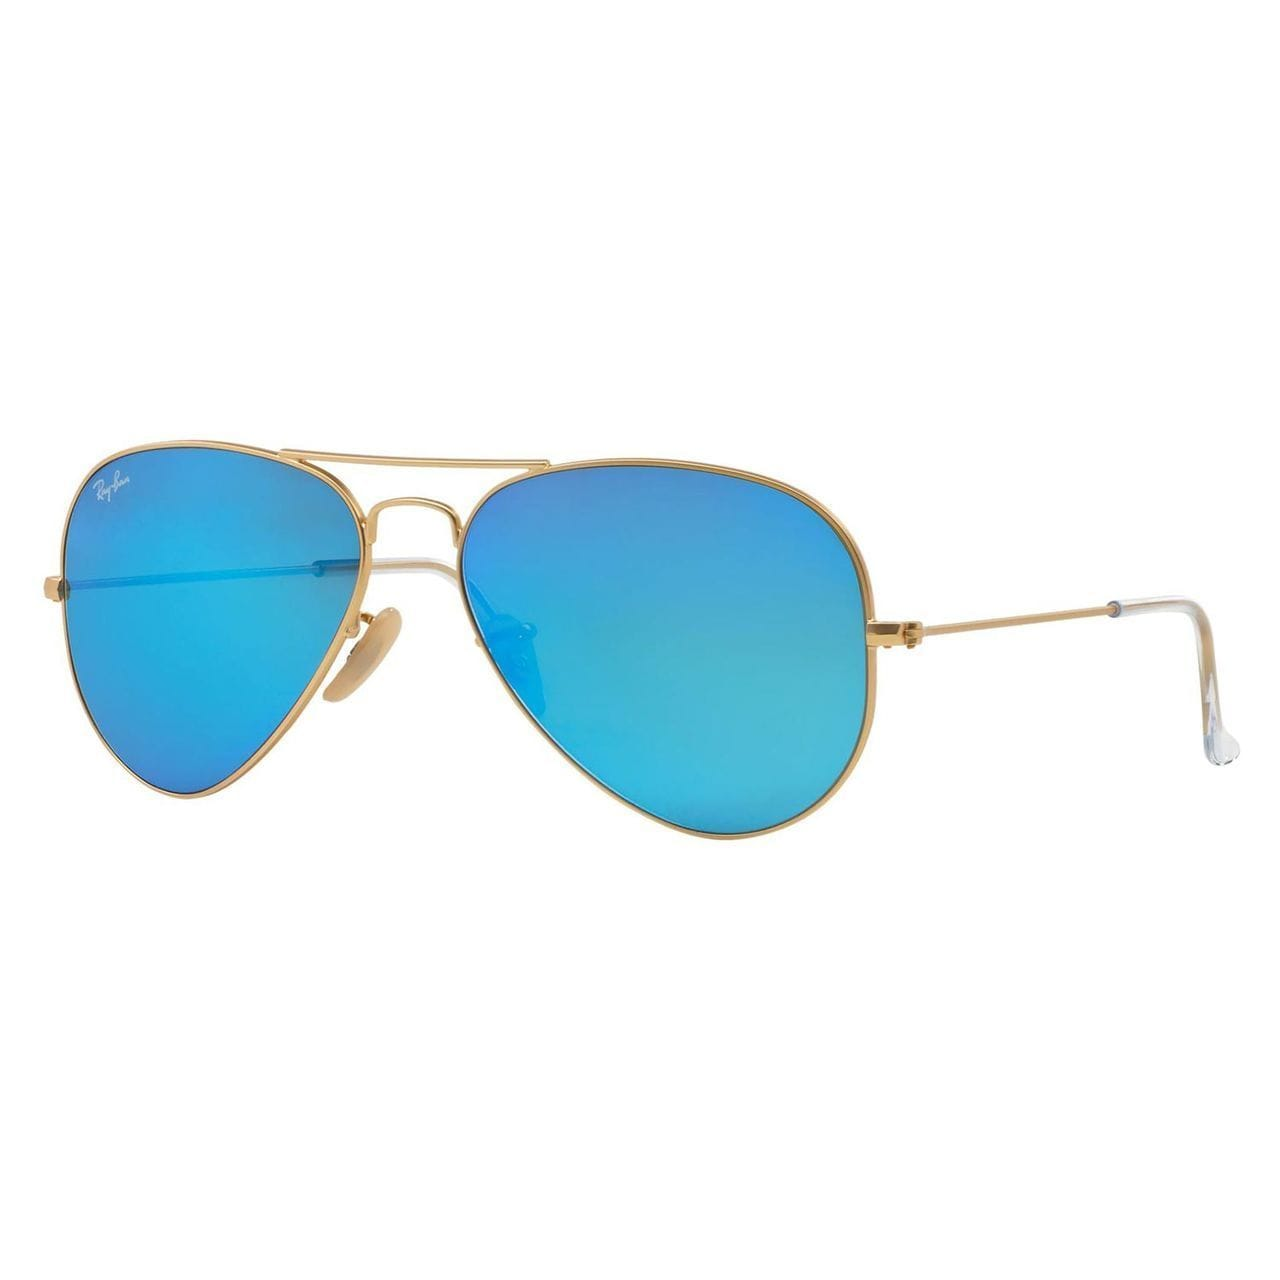 062947e84c Ray- Ban Aviator RB 3205 Unisex Gold Frame Blue Mirror Lens Sunglasses